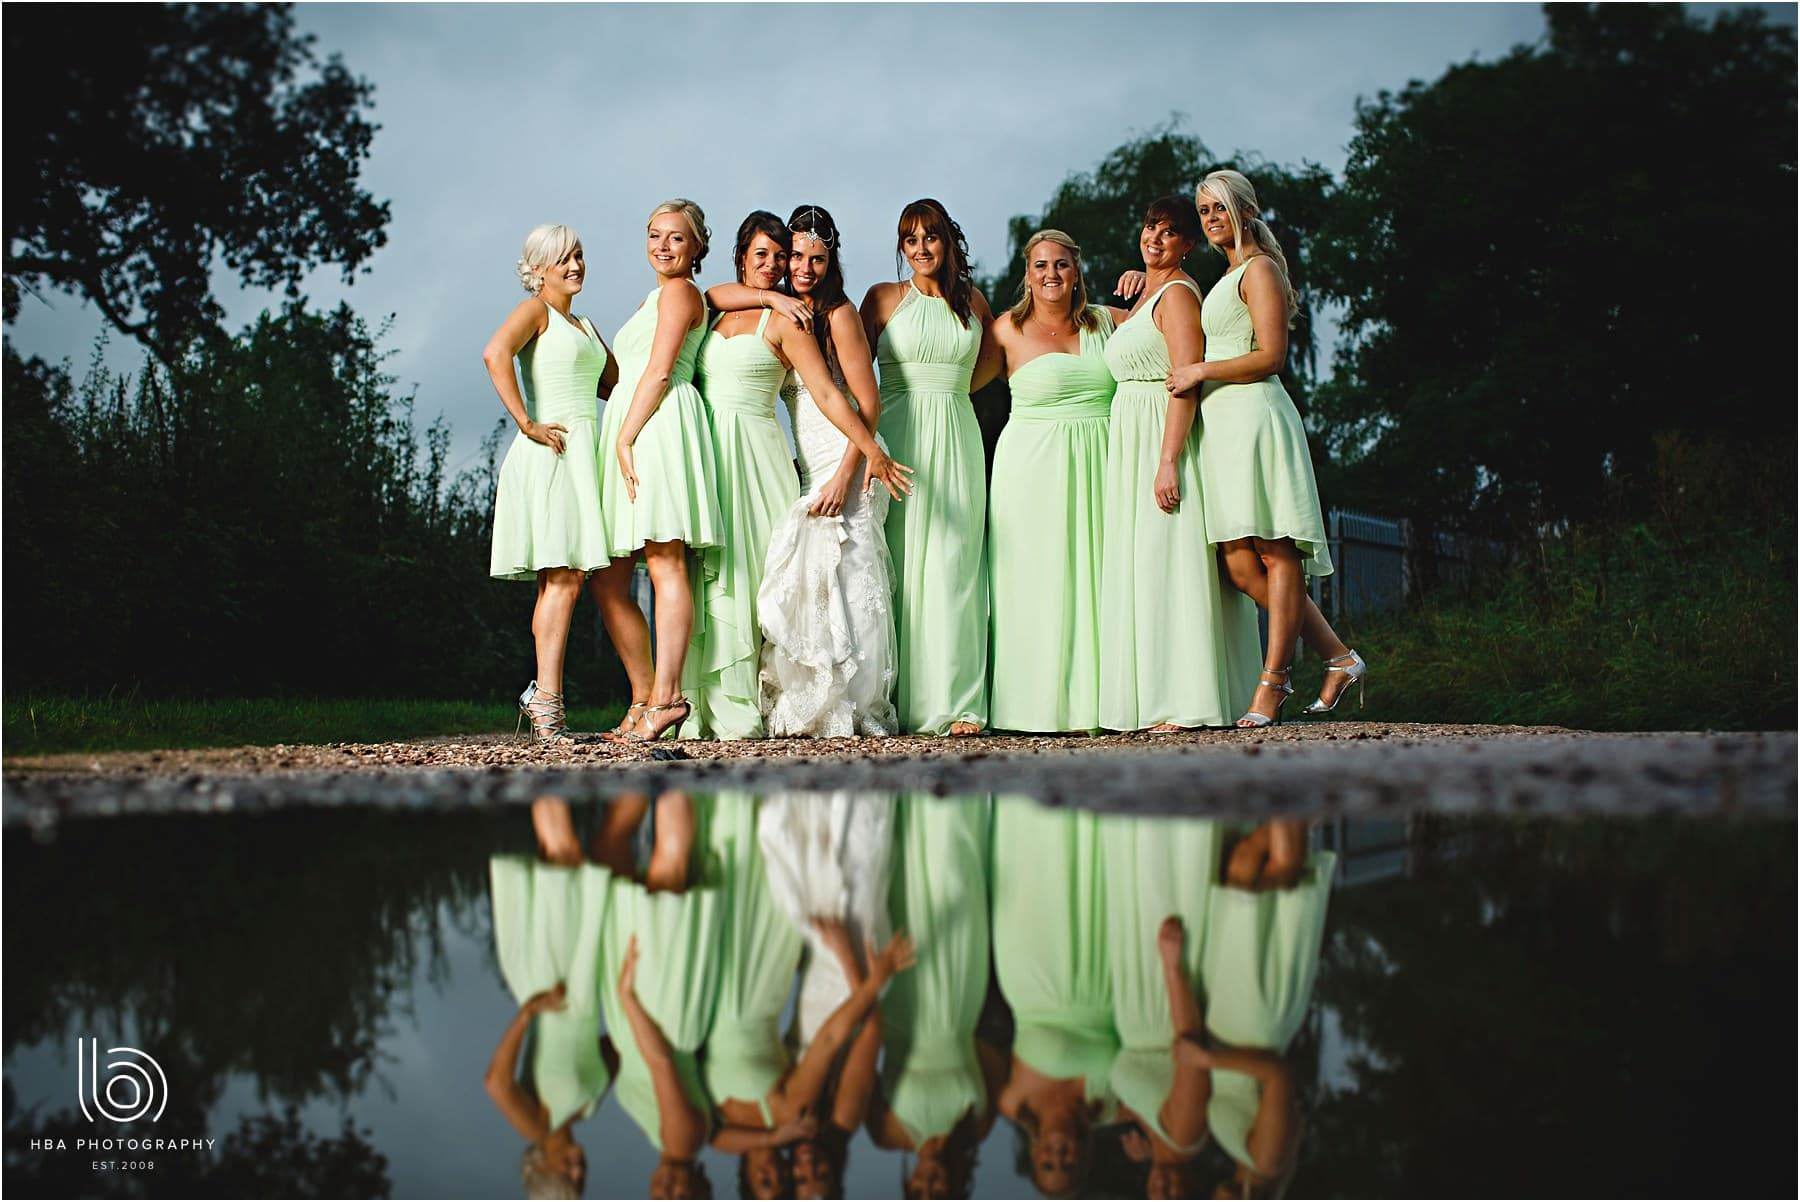 the bride & bridesmaids in a puddle